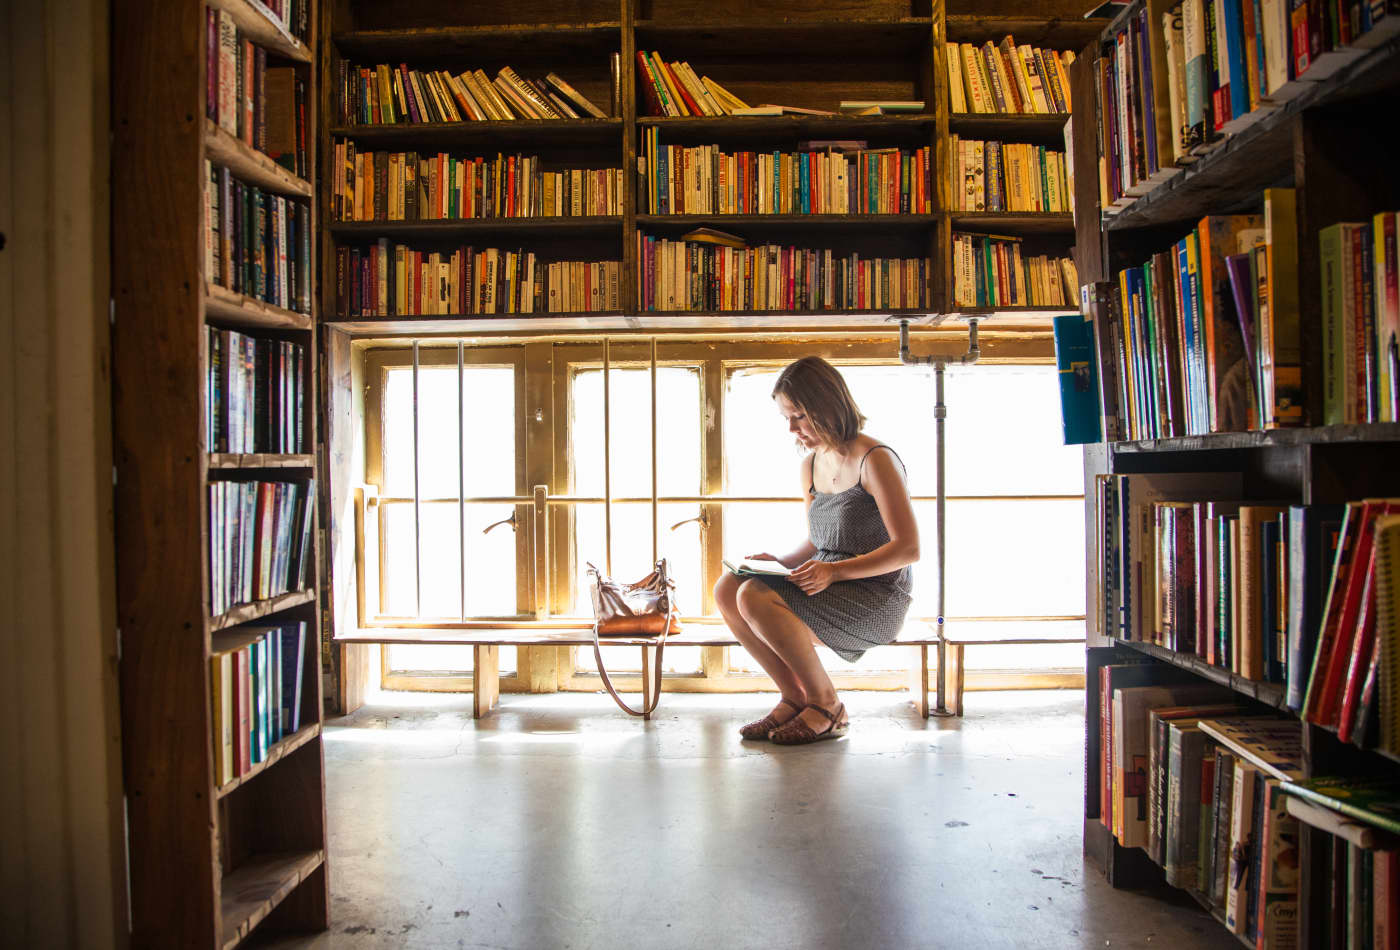 Need a summer reading list? Stanford professors say these 5 books will boost your success and value in life